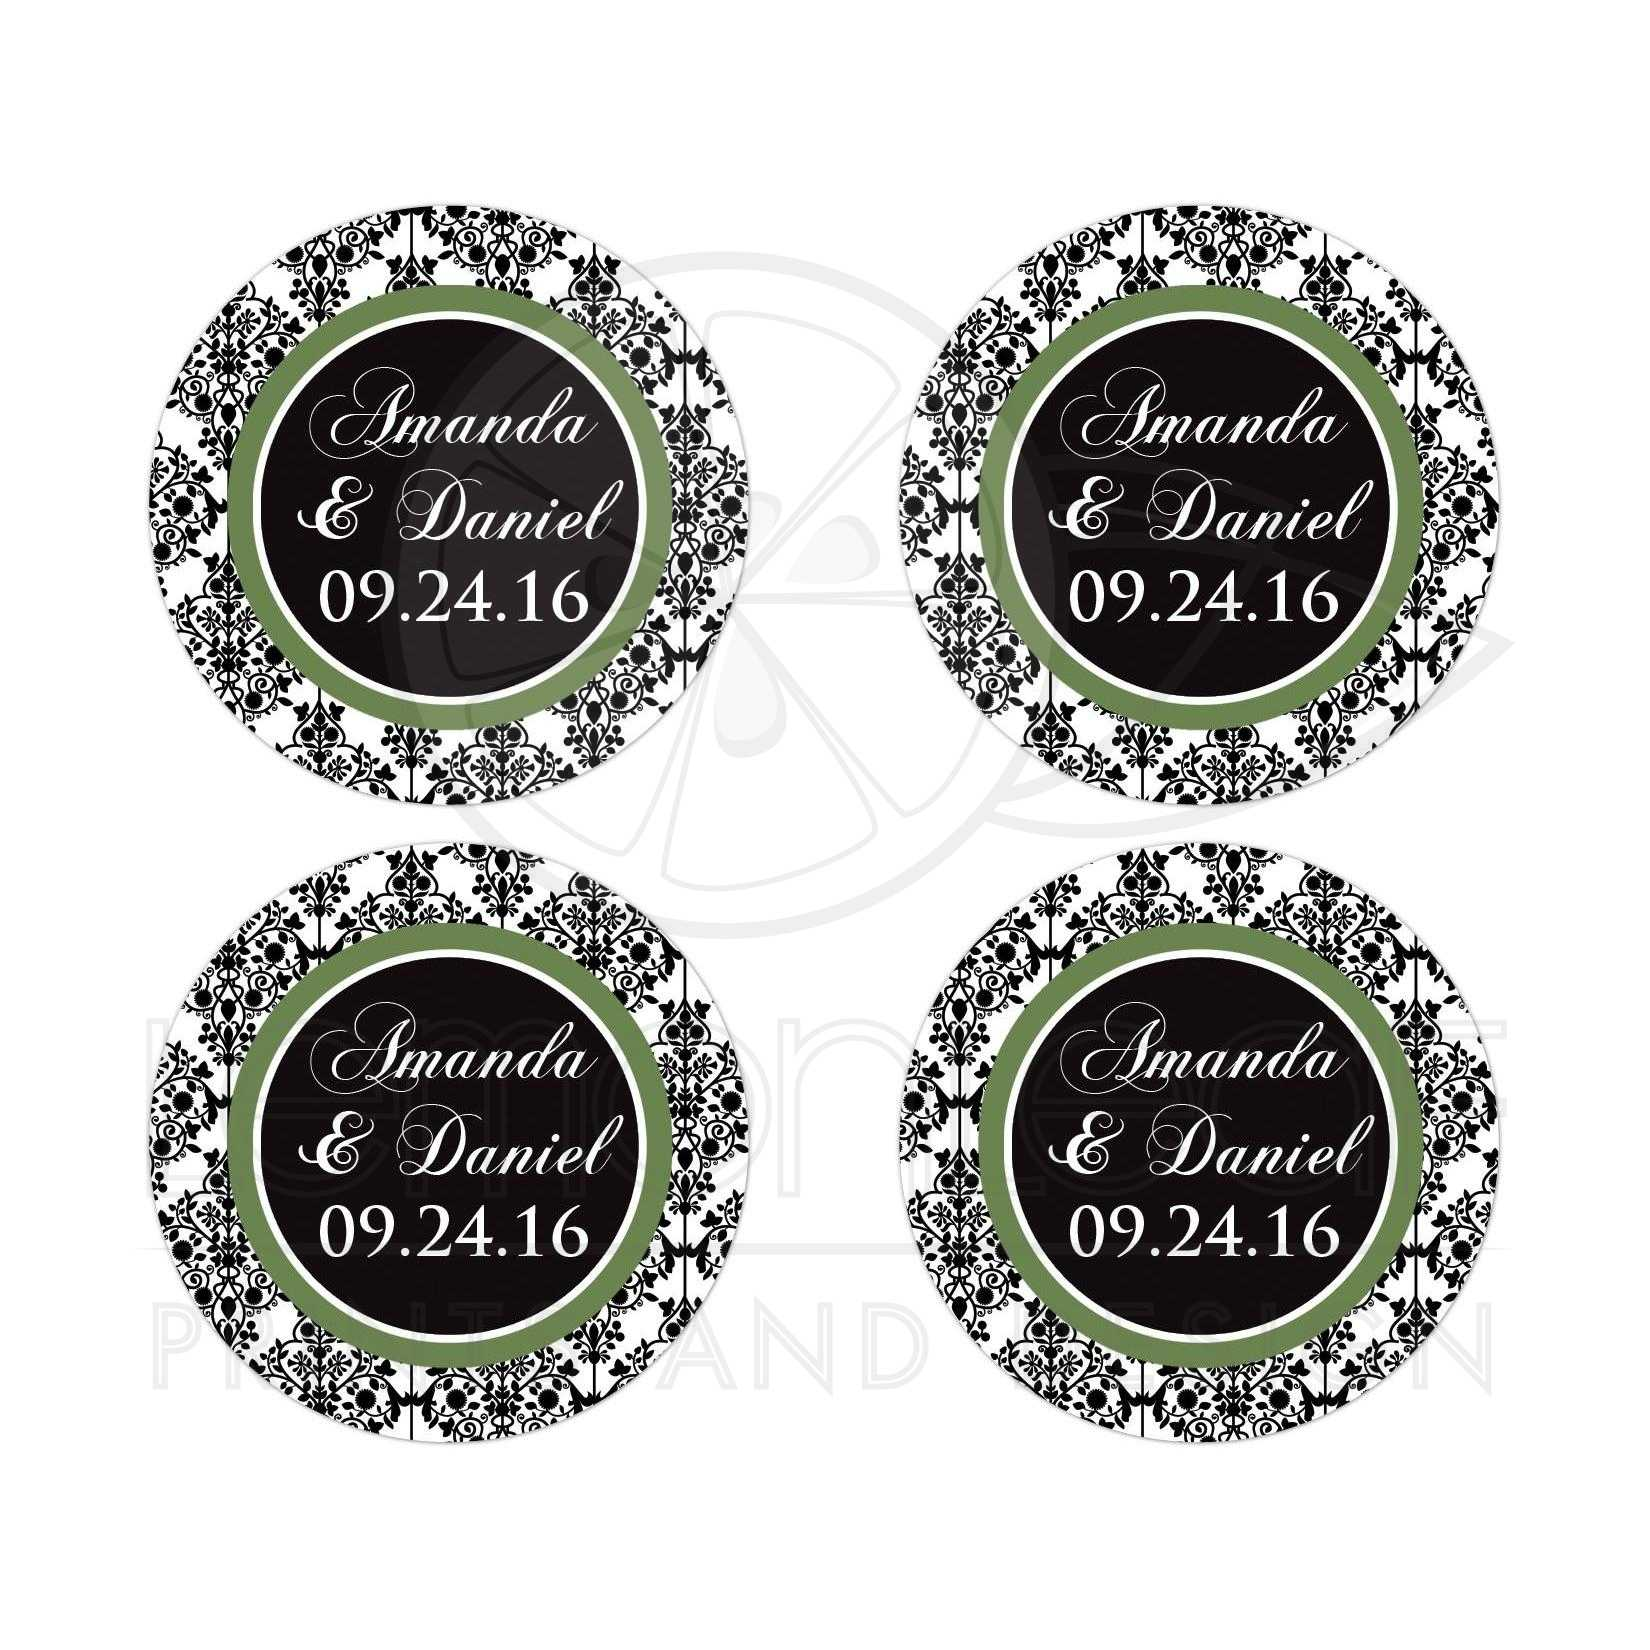 Personalized round wedding favor save the date sticker envelope seal in black and white damask with